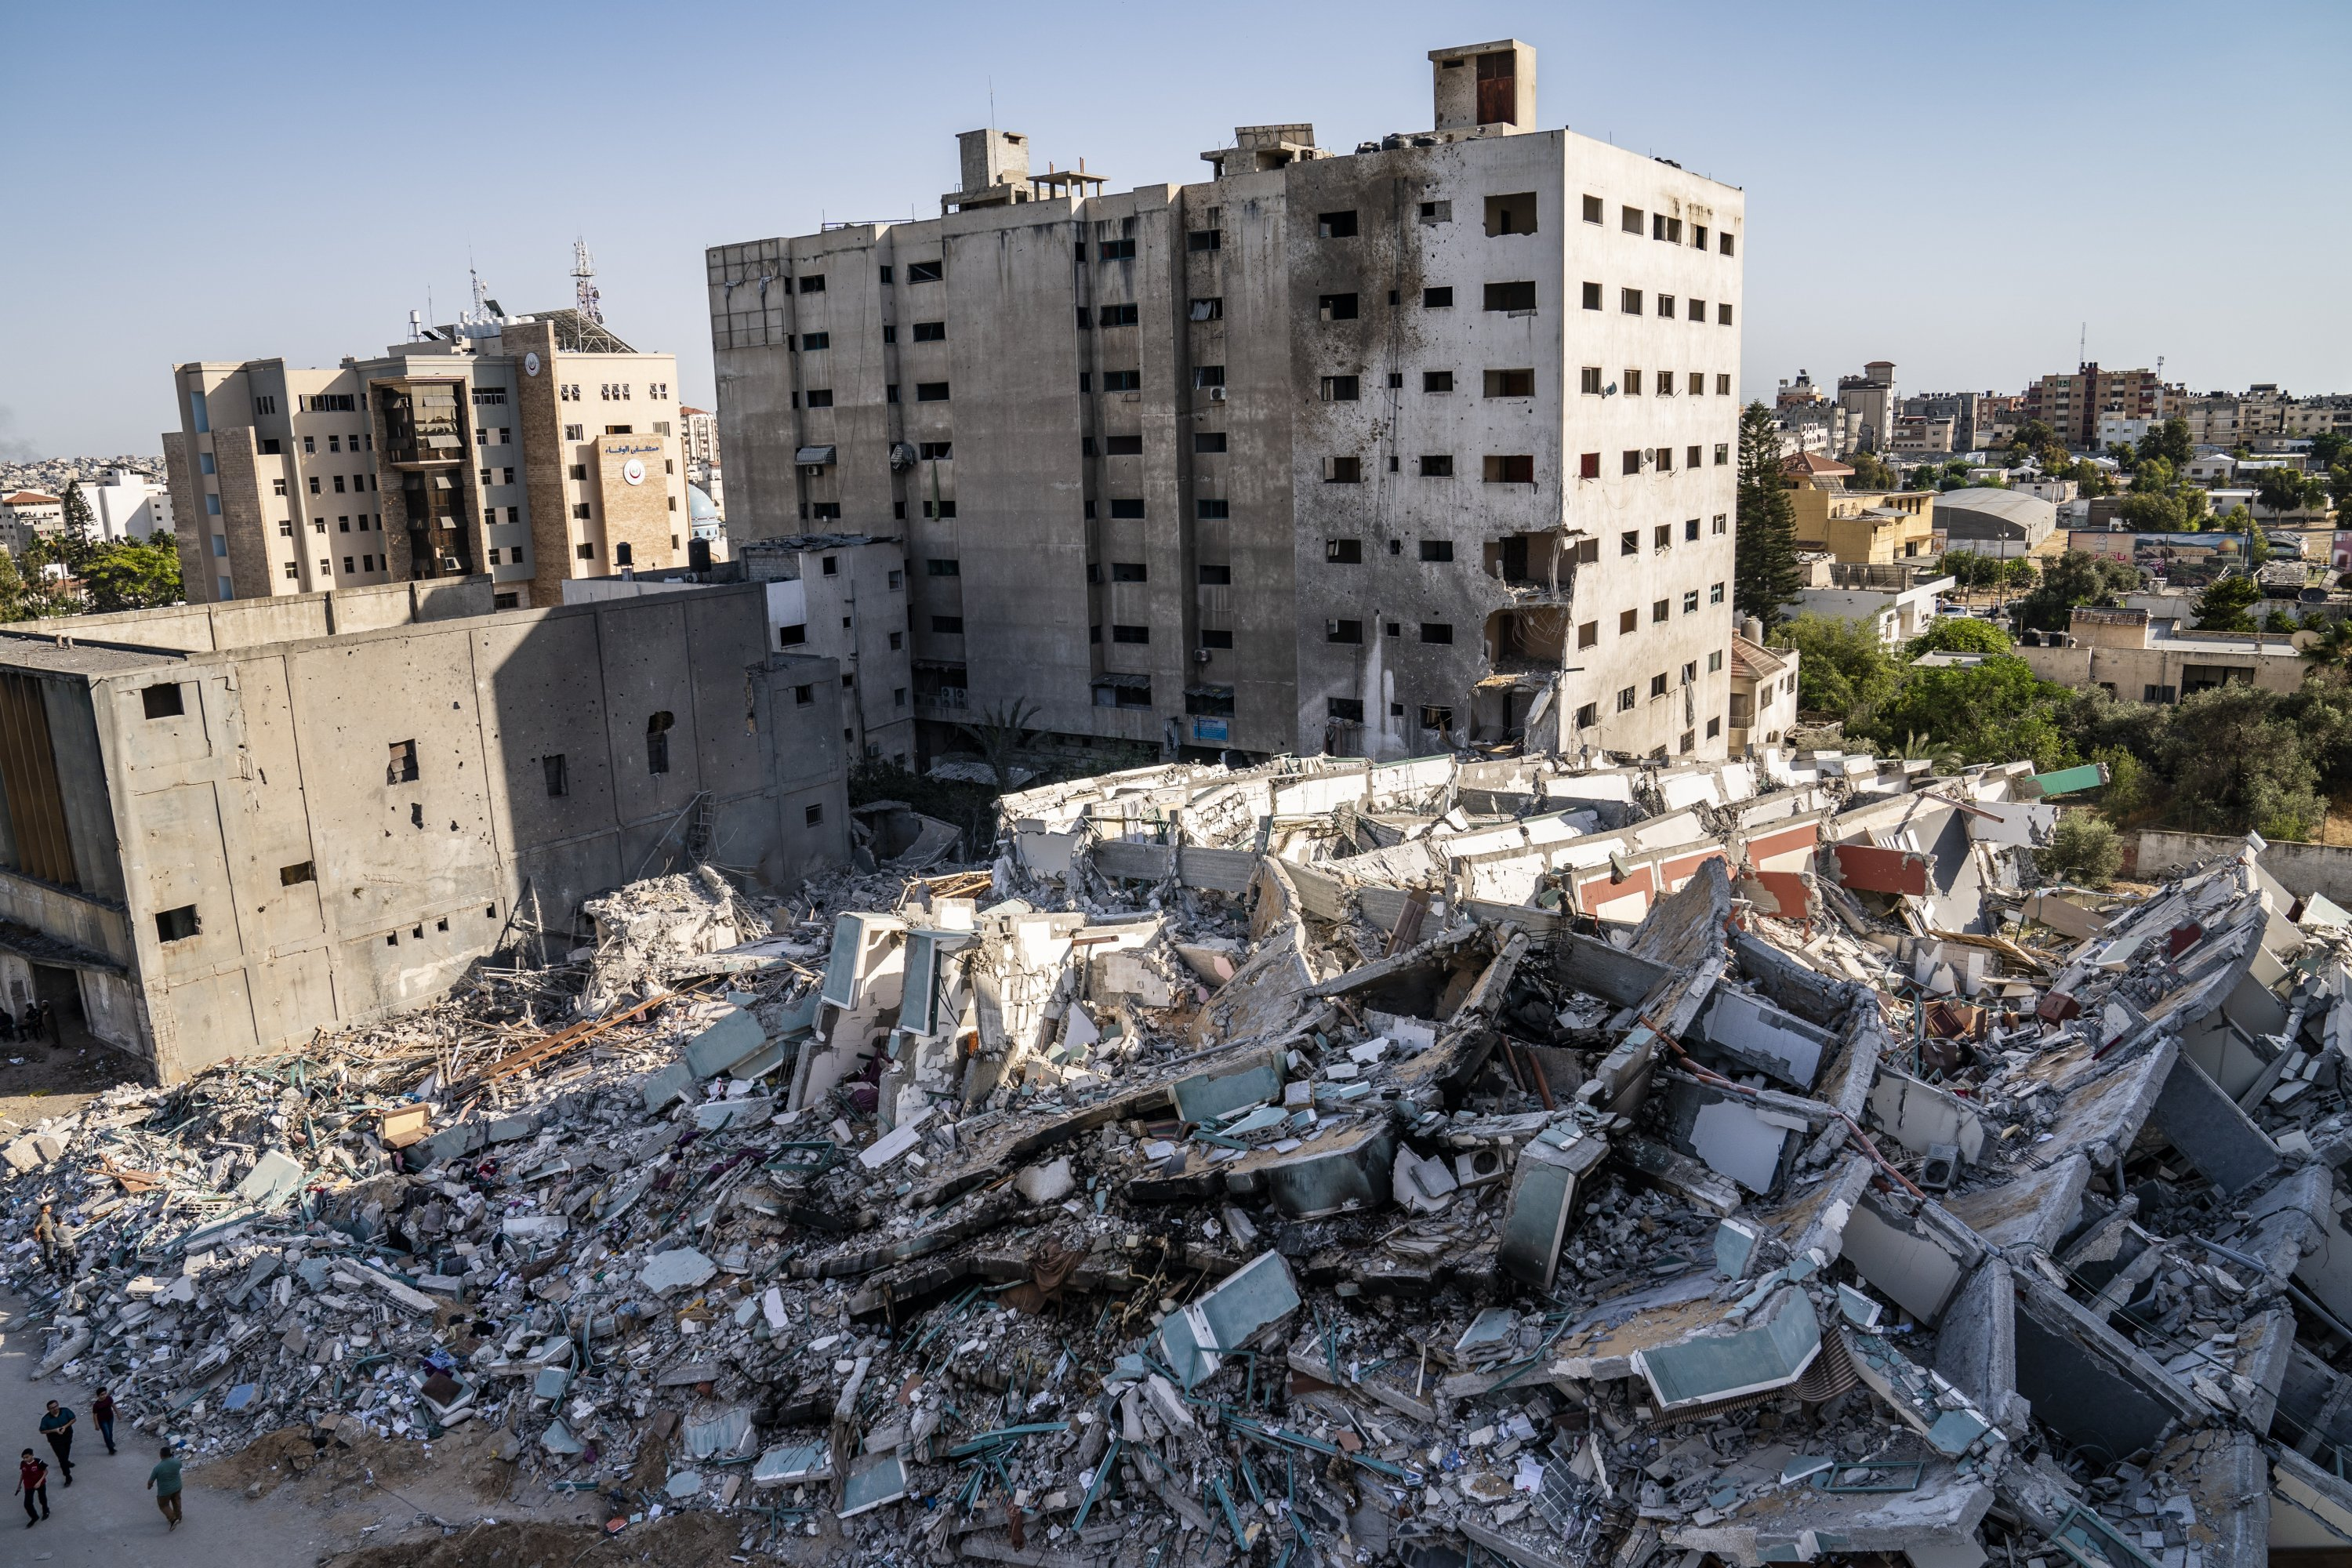 People walk past the rubble of the al-Jalaa building, which housed the Associated Press bureau in Gaza City for 15 years, that was destroyed in a previous airstrike following a cease-fire reached after an 11-day war between Gaza's Hamas rulers and Israel, in Gaza City, Palestine, May 21, 2021. (AP Photo)